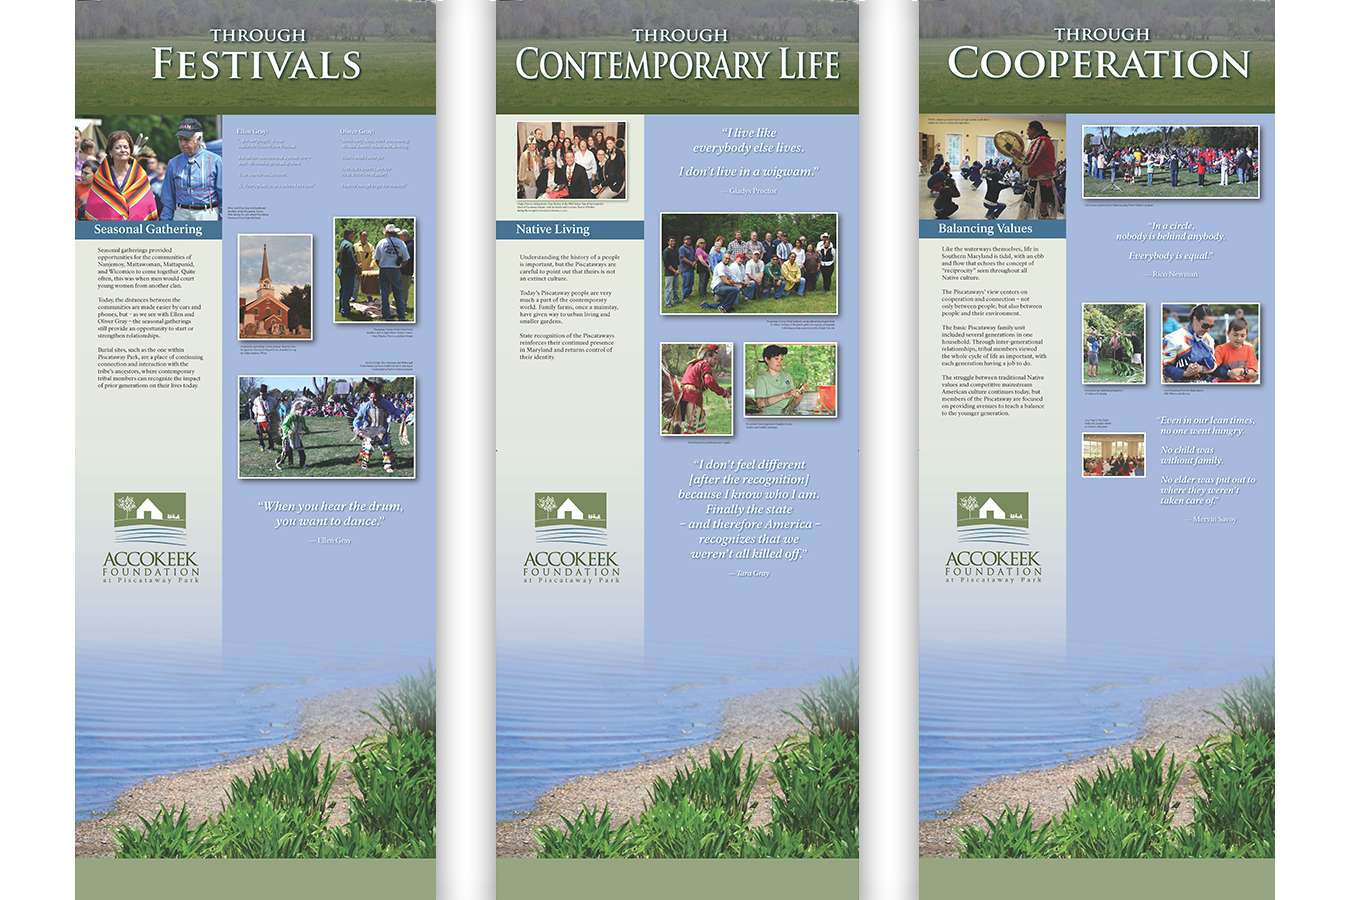 8P Bans 4-6 : Portable Banner Stands used at events and for educational programs